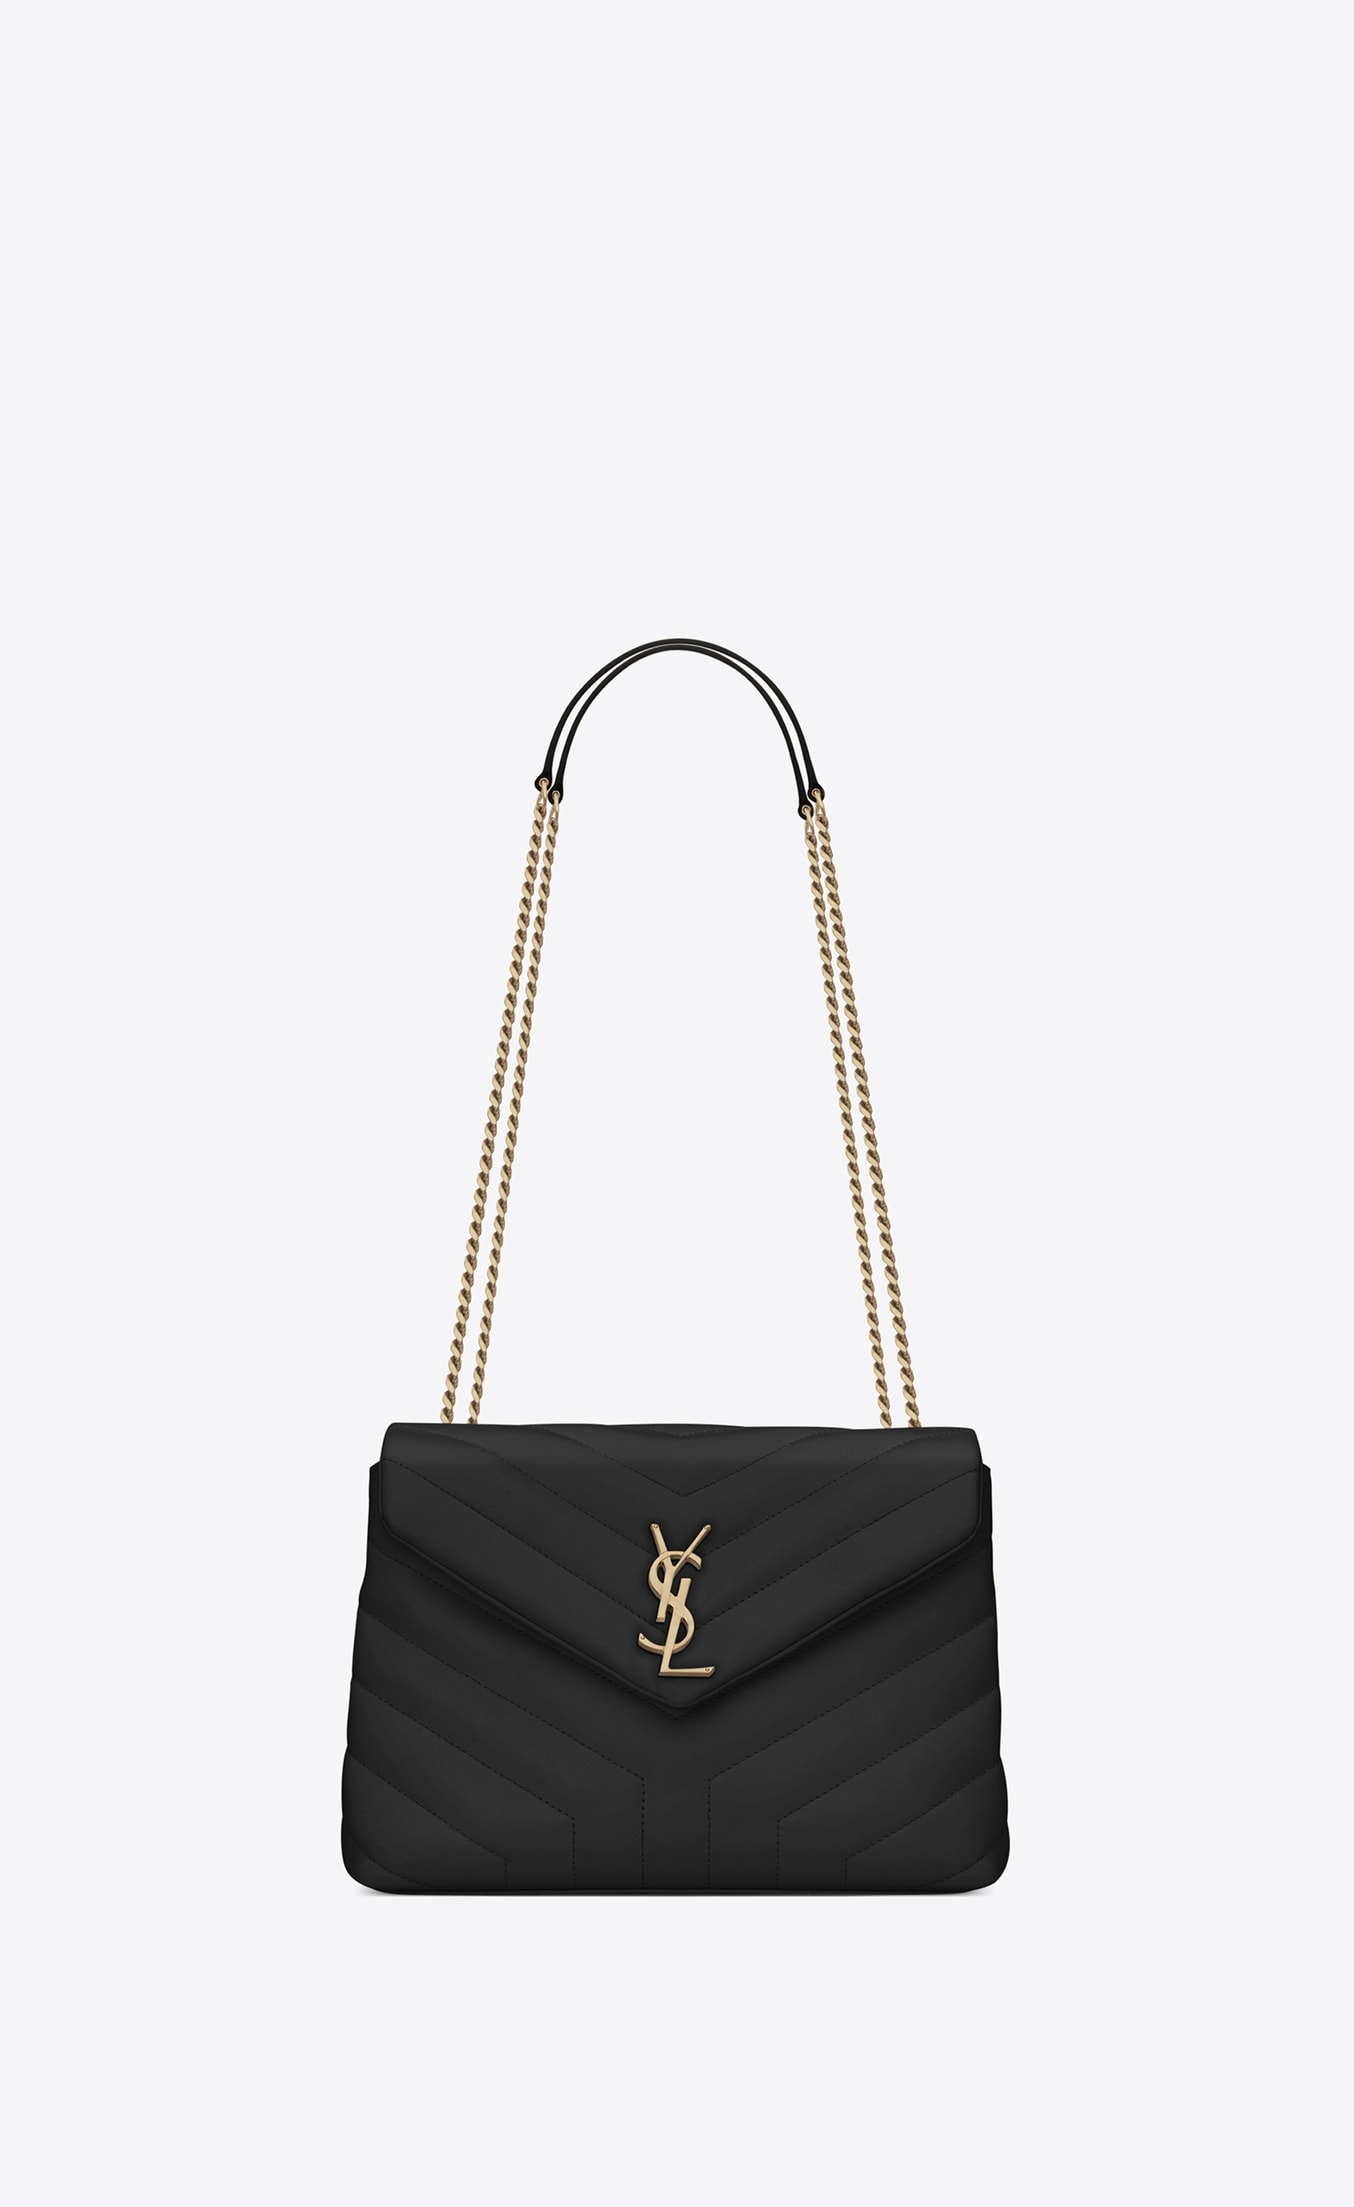 Saint Laurent Bag - Anyone who knows me knows I have a strong love of Saint Laurent bags, clothes, shoes, everything. One day I will buy myself one of these beauties, but until that day it will remain on my wish list.